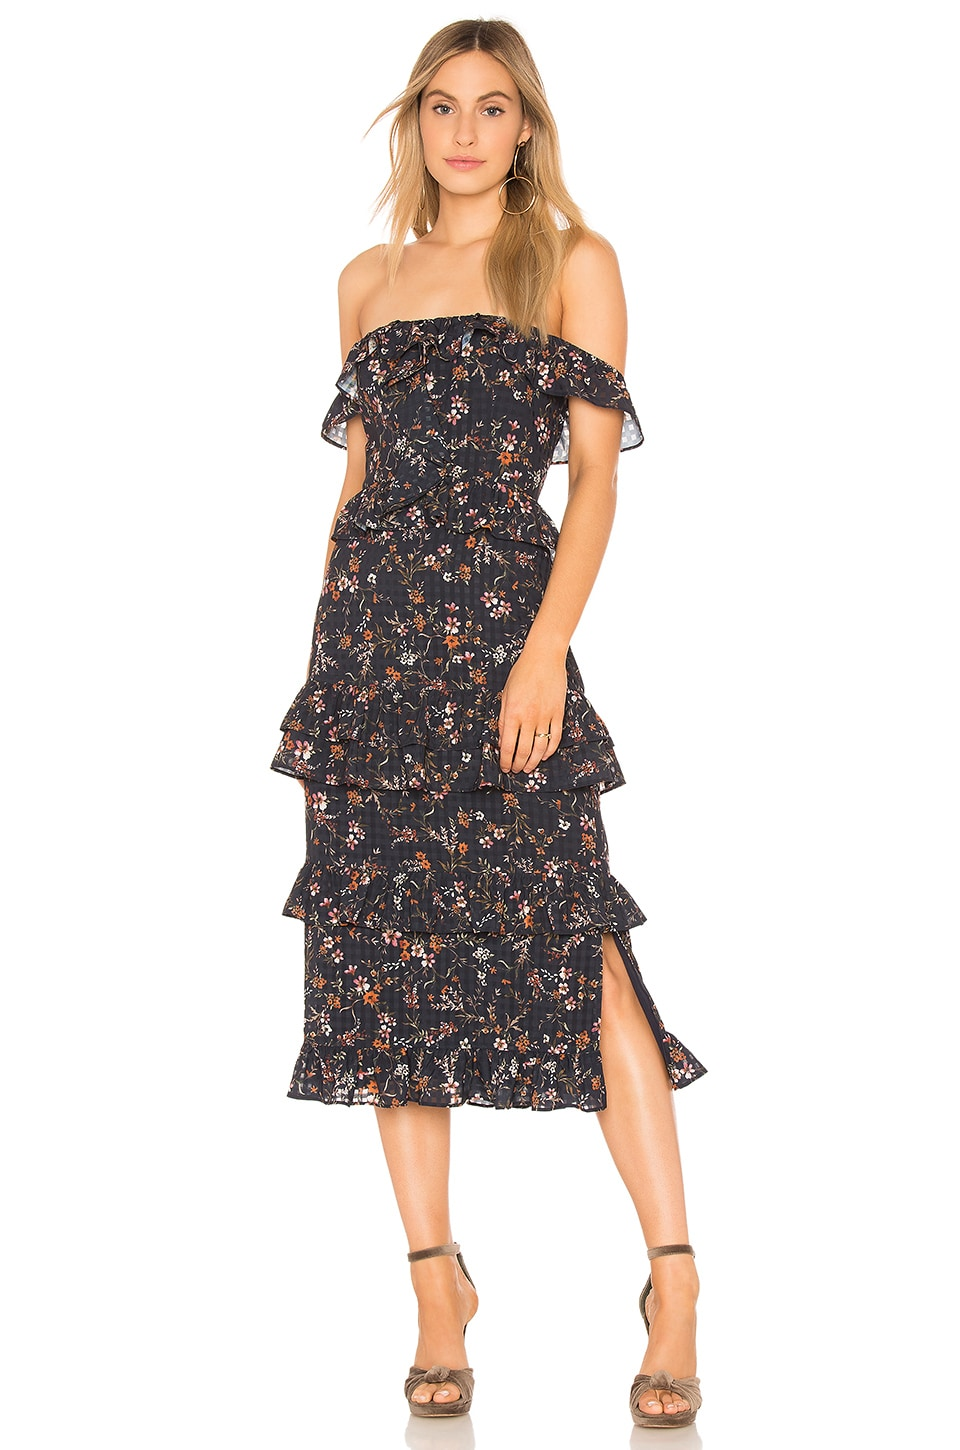 Tularosa Lily Dress in Burlingame Floral